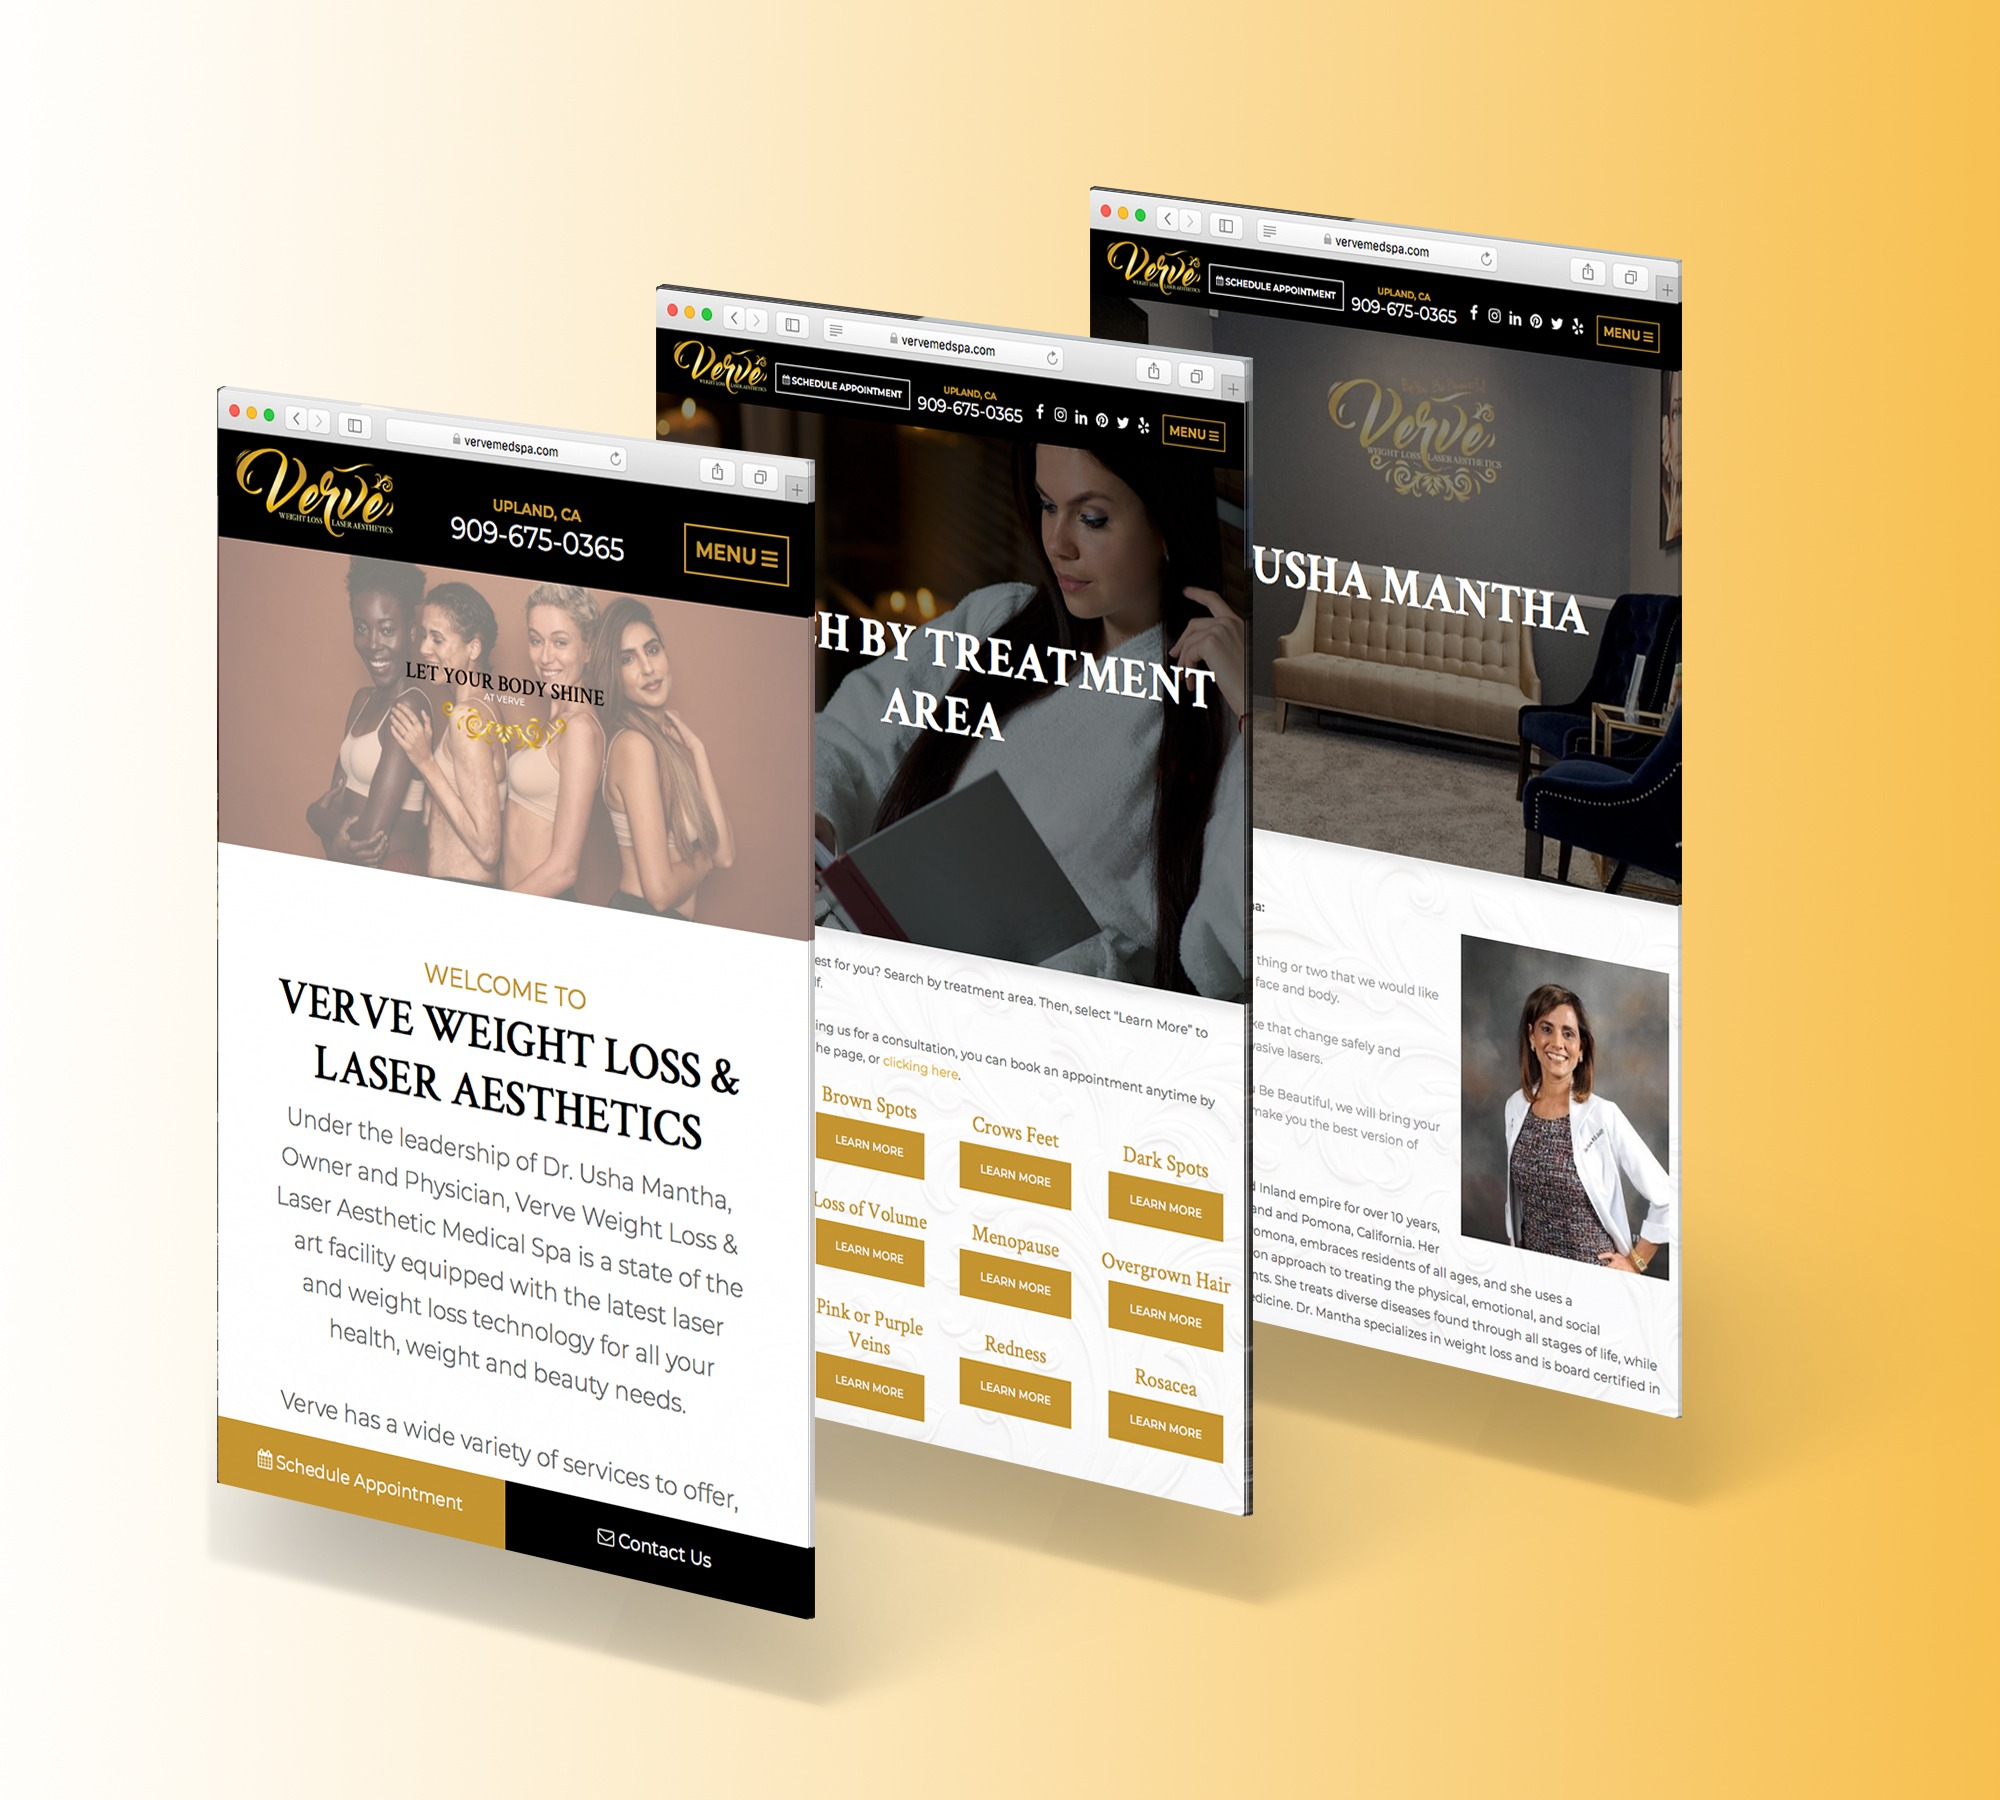 Verve Weight Loss & Laser Aesthetic Medical Spa Web Display